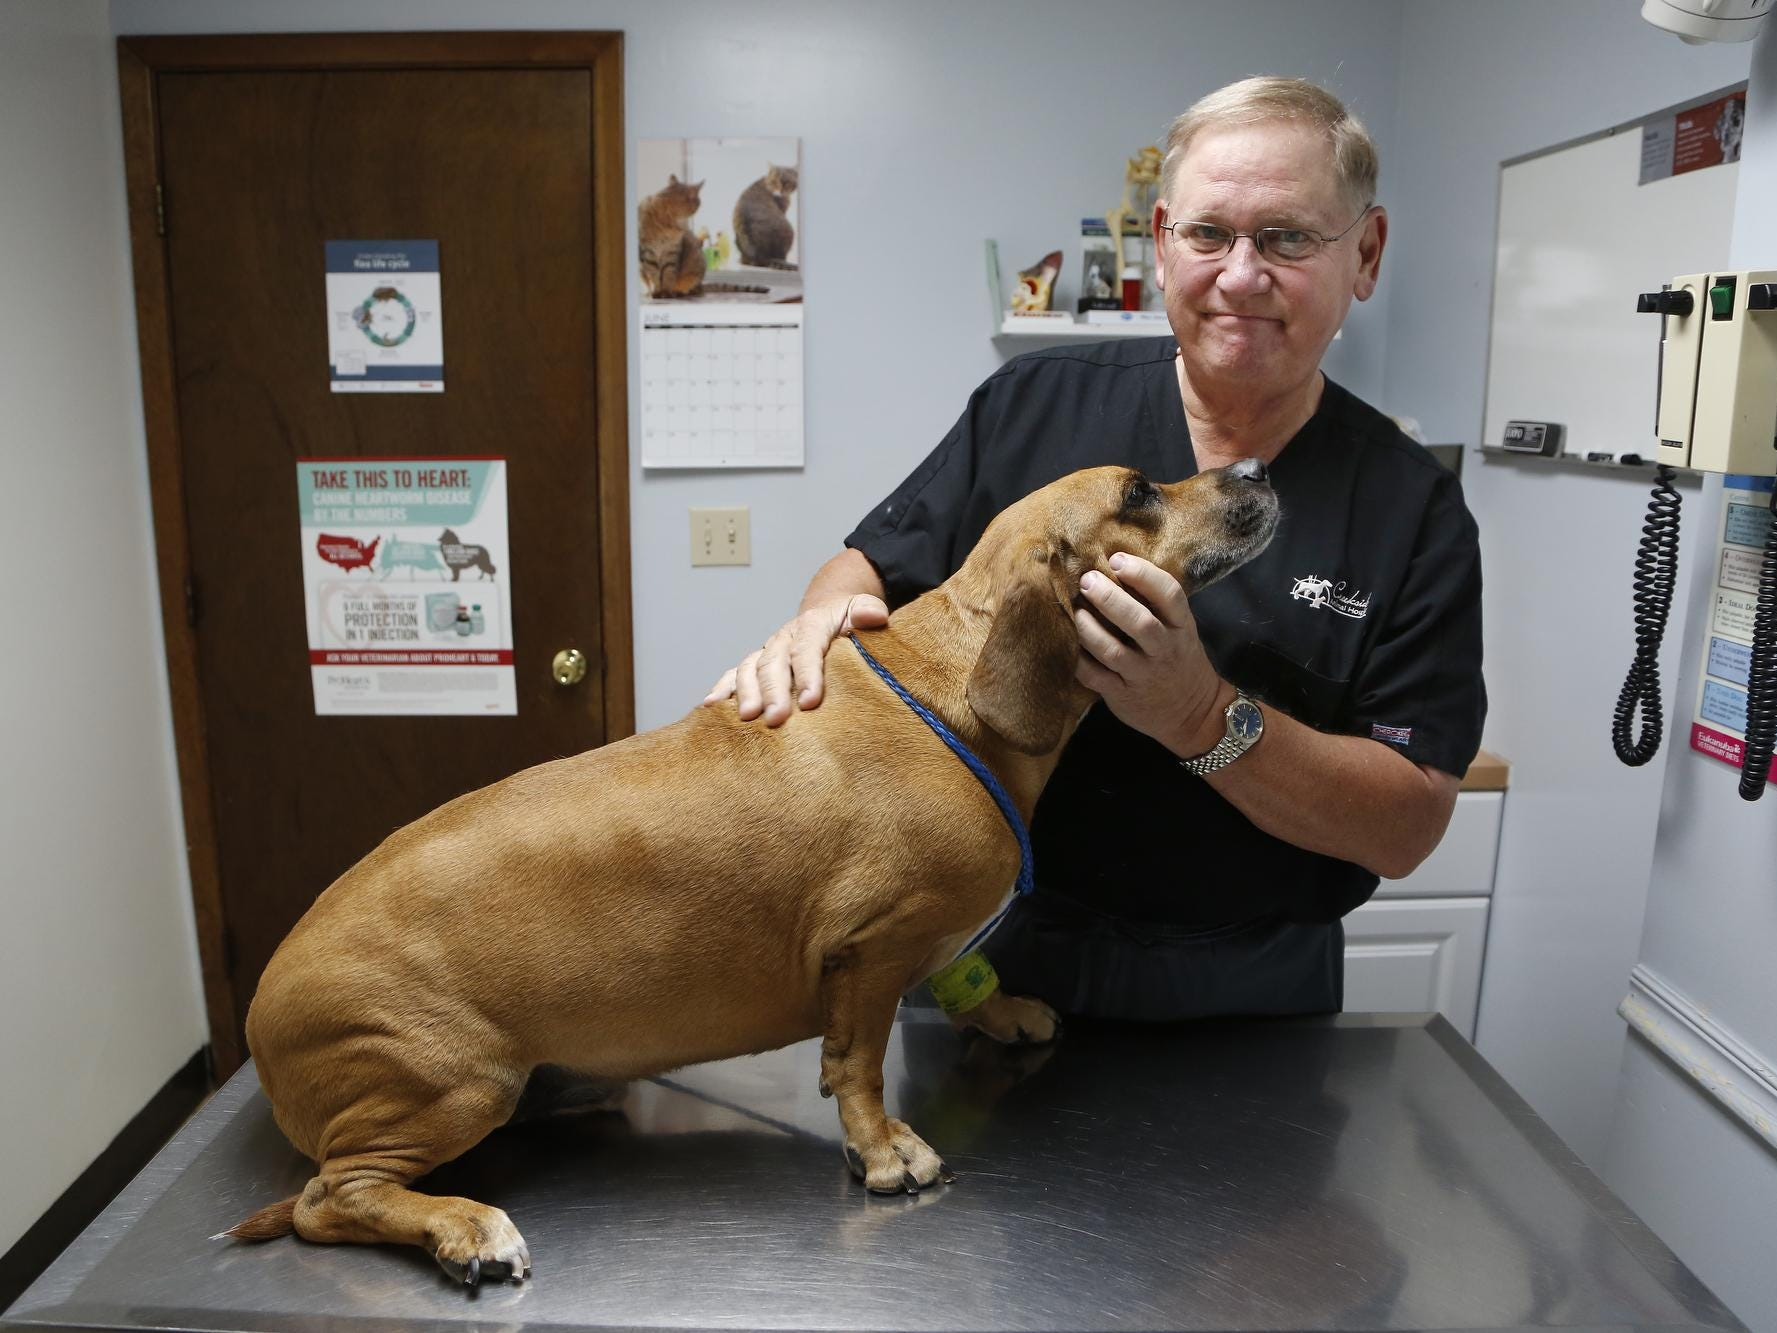 Veterinarian Todd Clark visit with Digby, a seven-year-old Basset mix, Monday, June 22, 2015, at Creekside Animal Hospital, 2840 Schuyler Avenue in Lafayette. The dog had its teeth cleaned earlier in the morning. Clark is retiring as a high school football referee after 41 years.